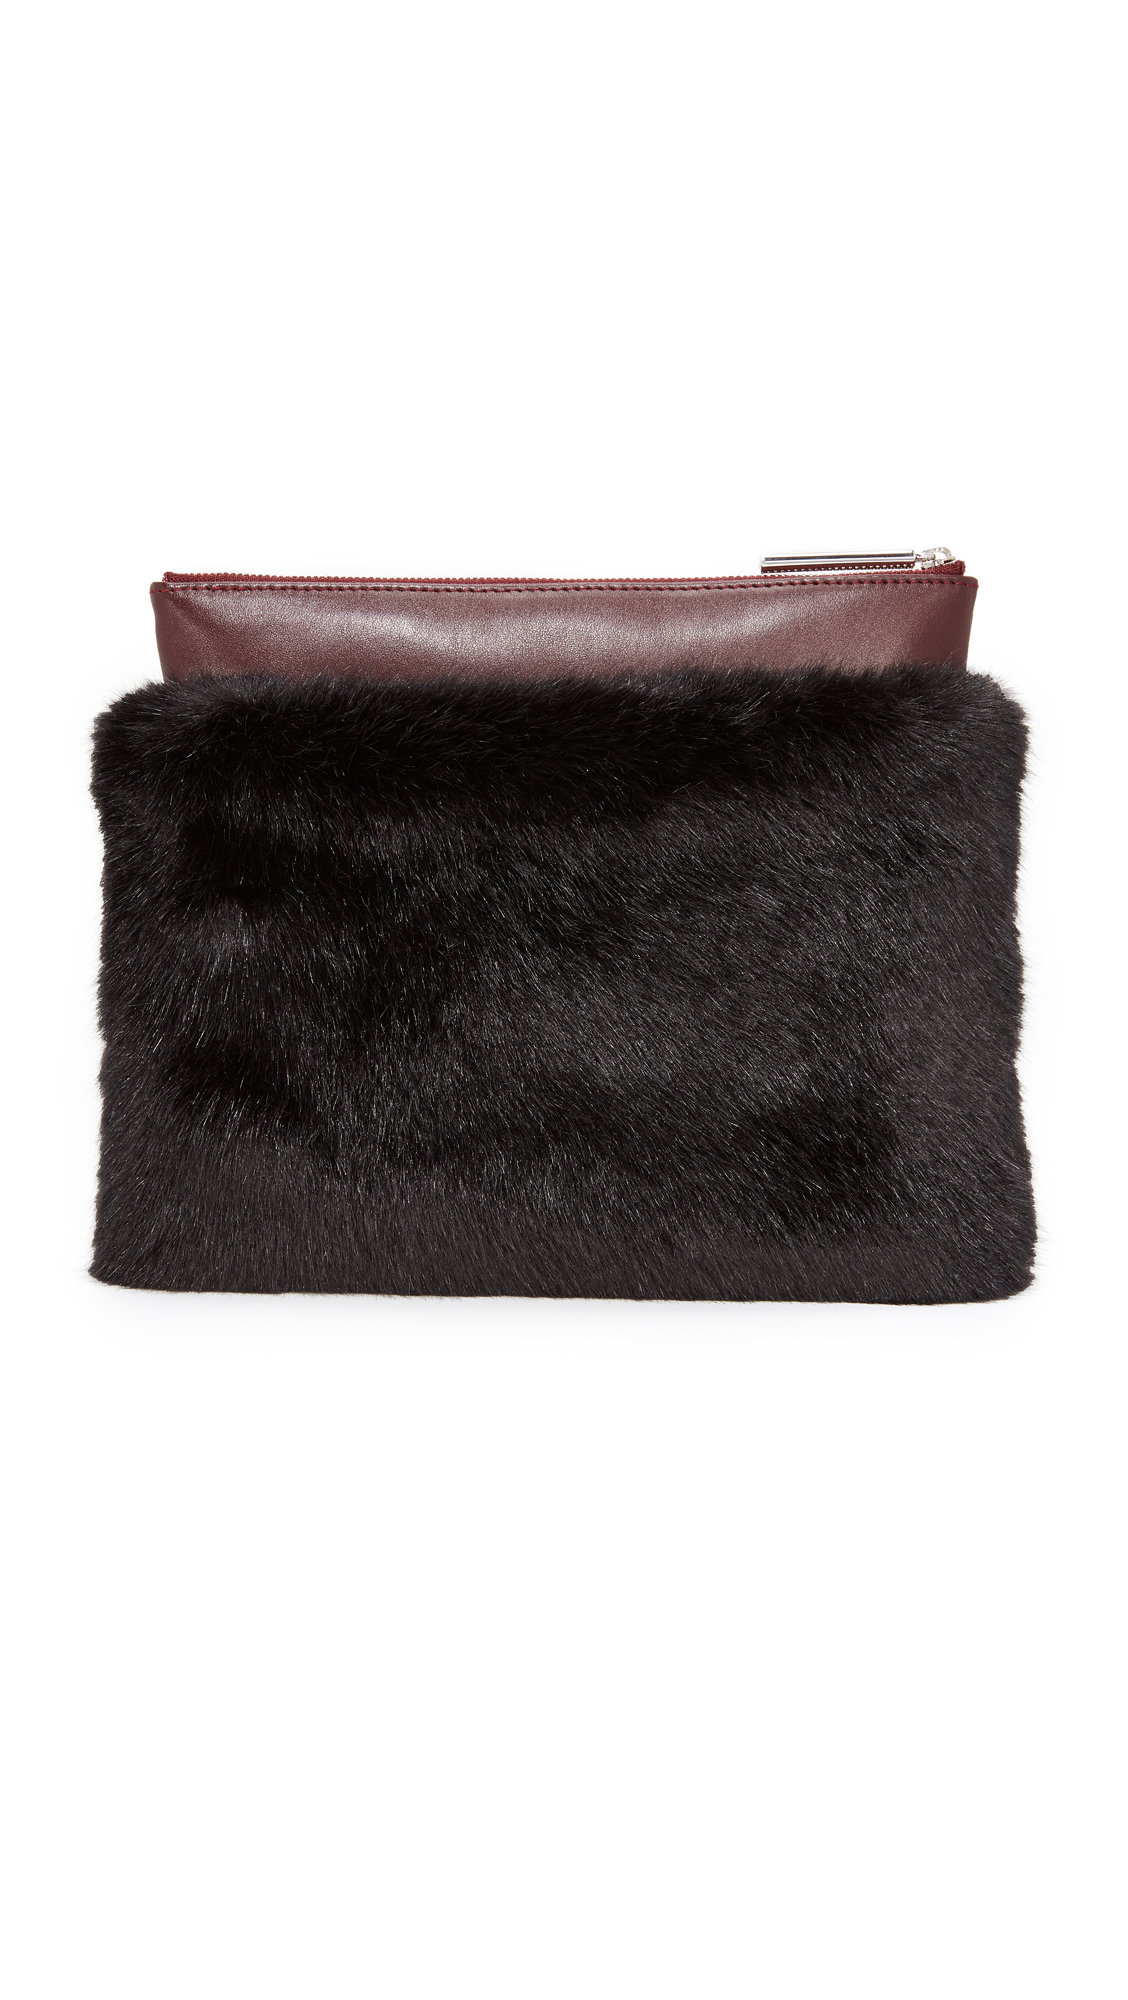 MILMA Detachable Faux Fur Clutch - Black/Burgundy